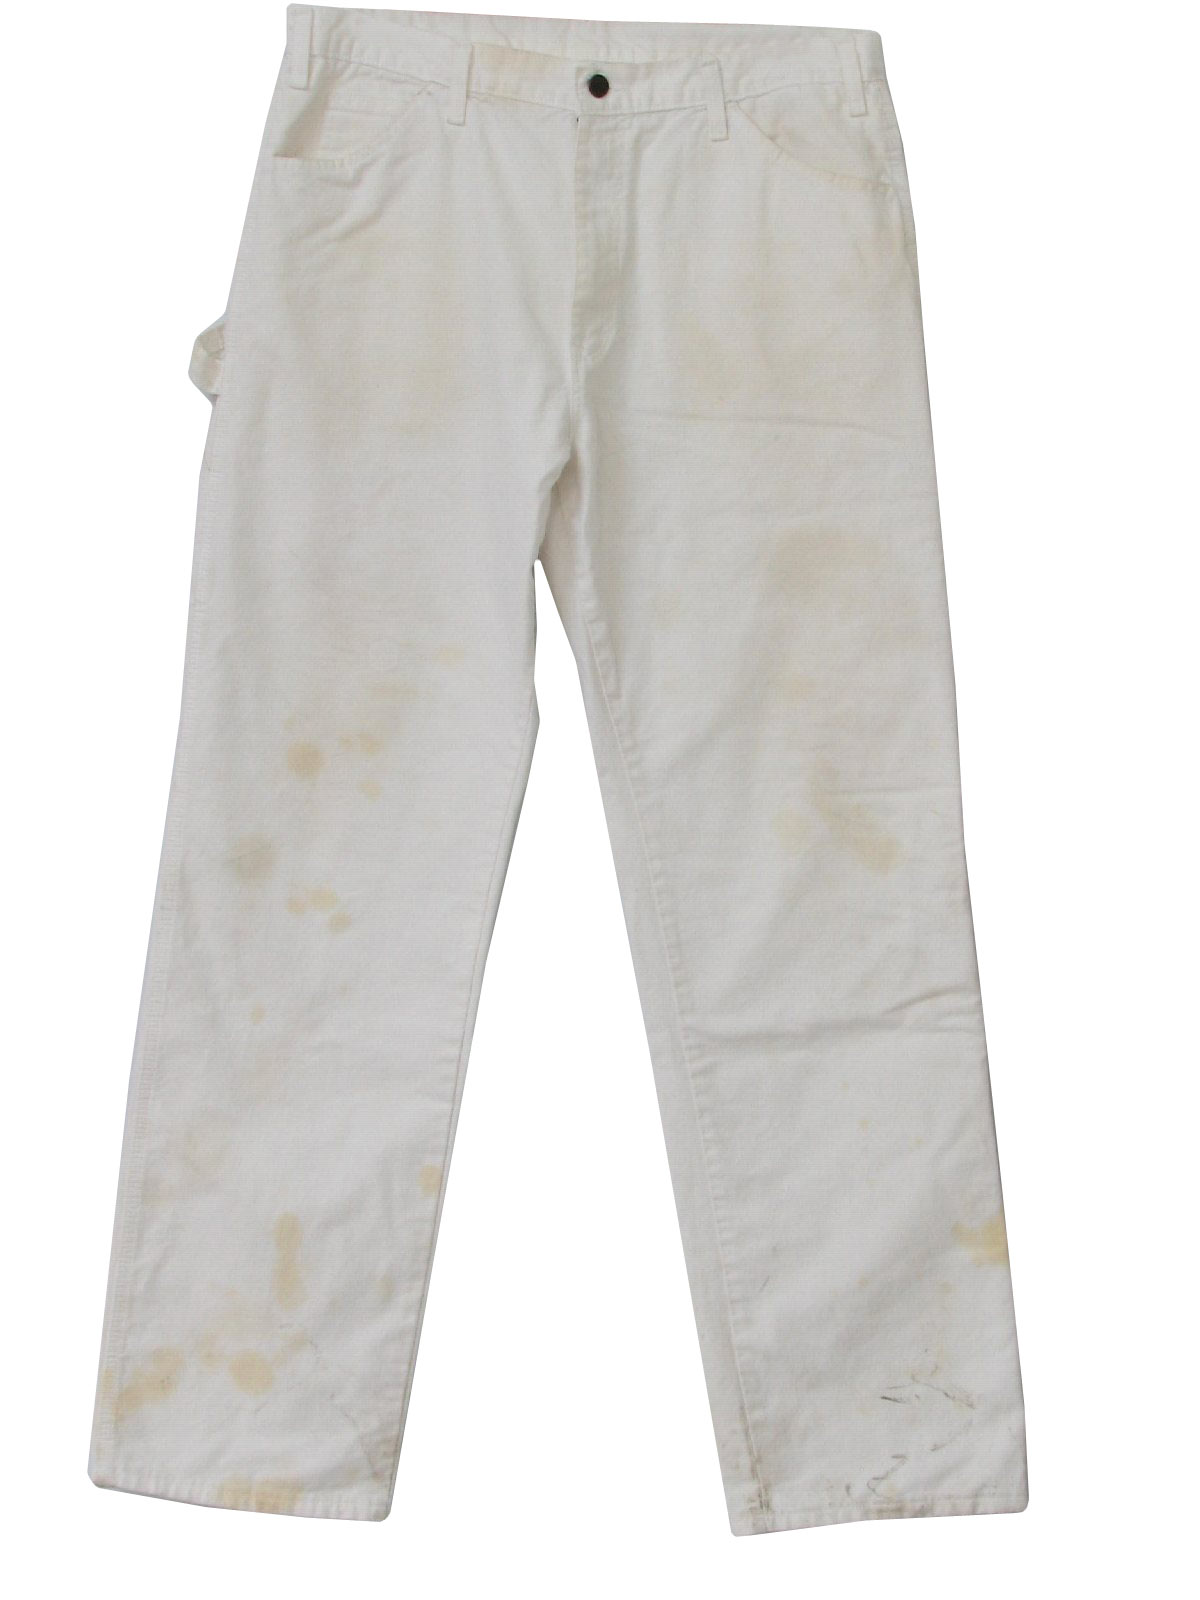 Painters Pants Womens Cotton Painter Pants With